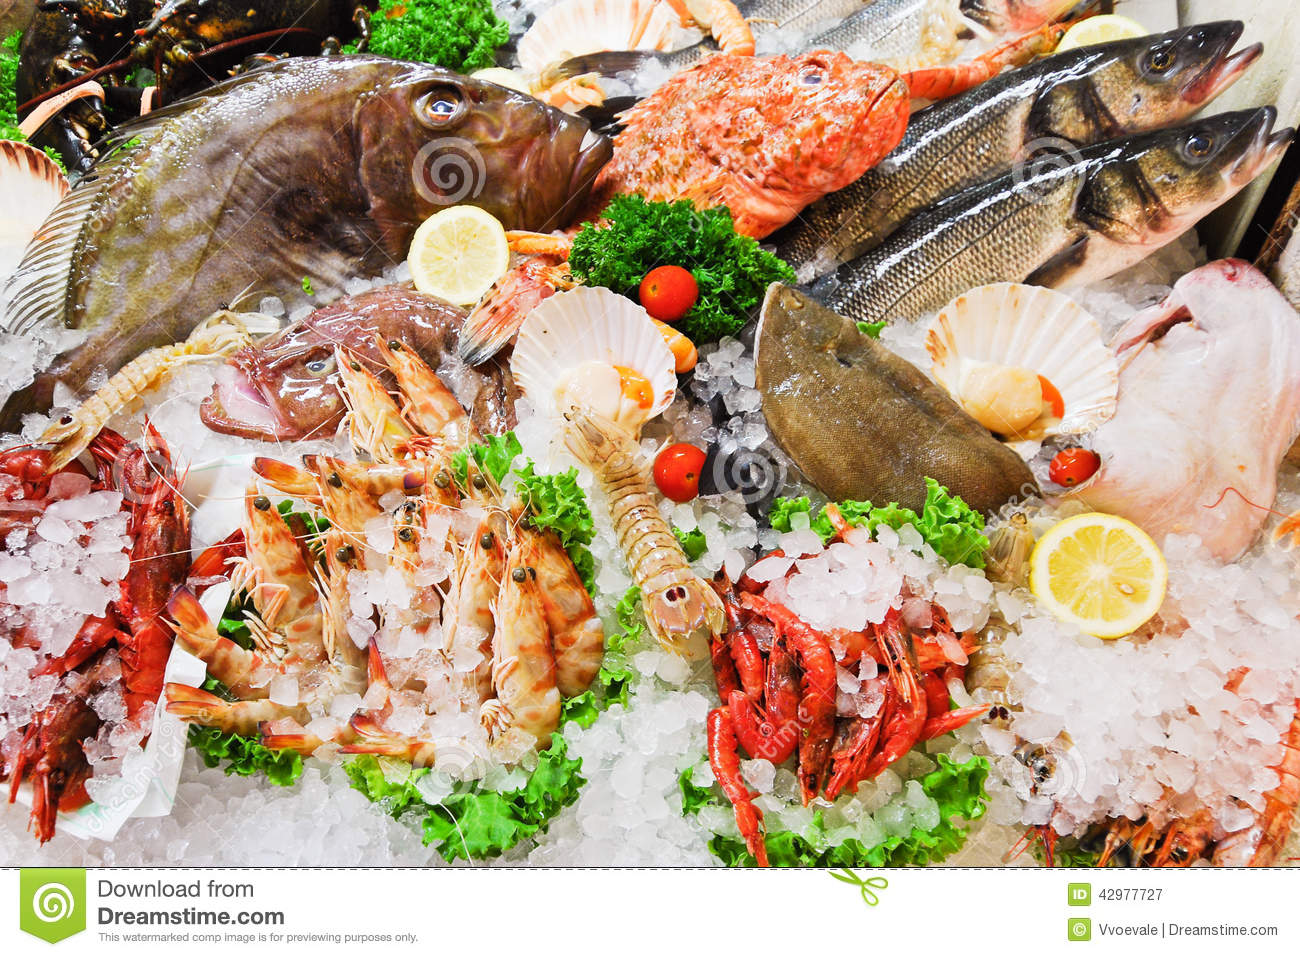 Raw fish and seafood in ice